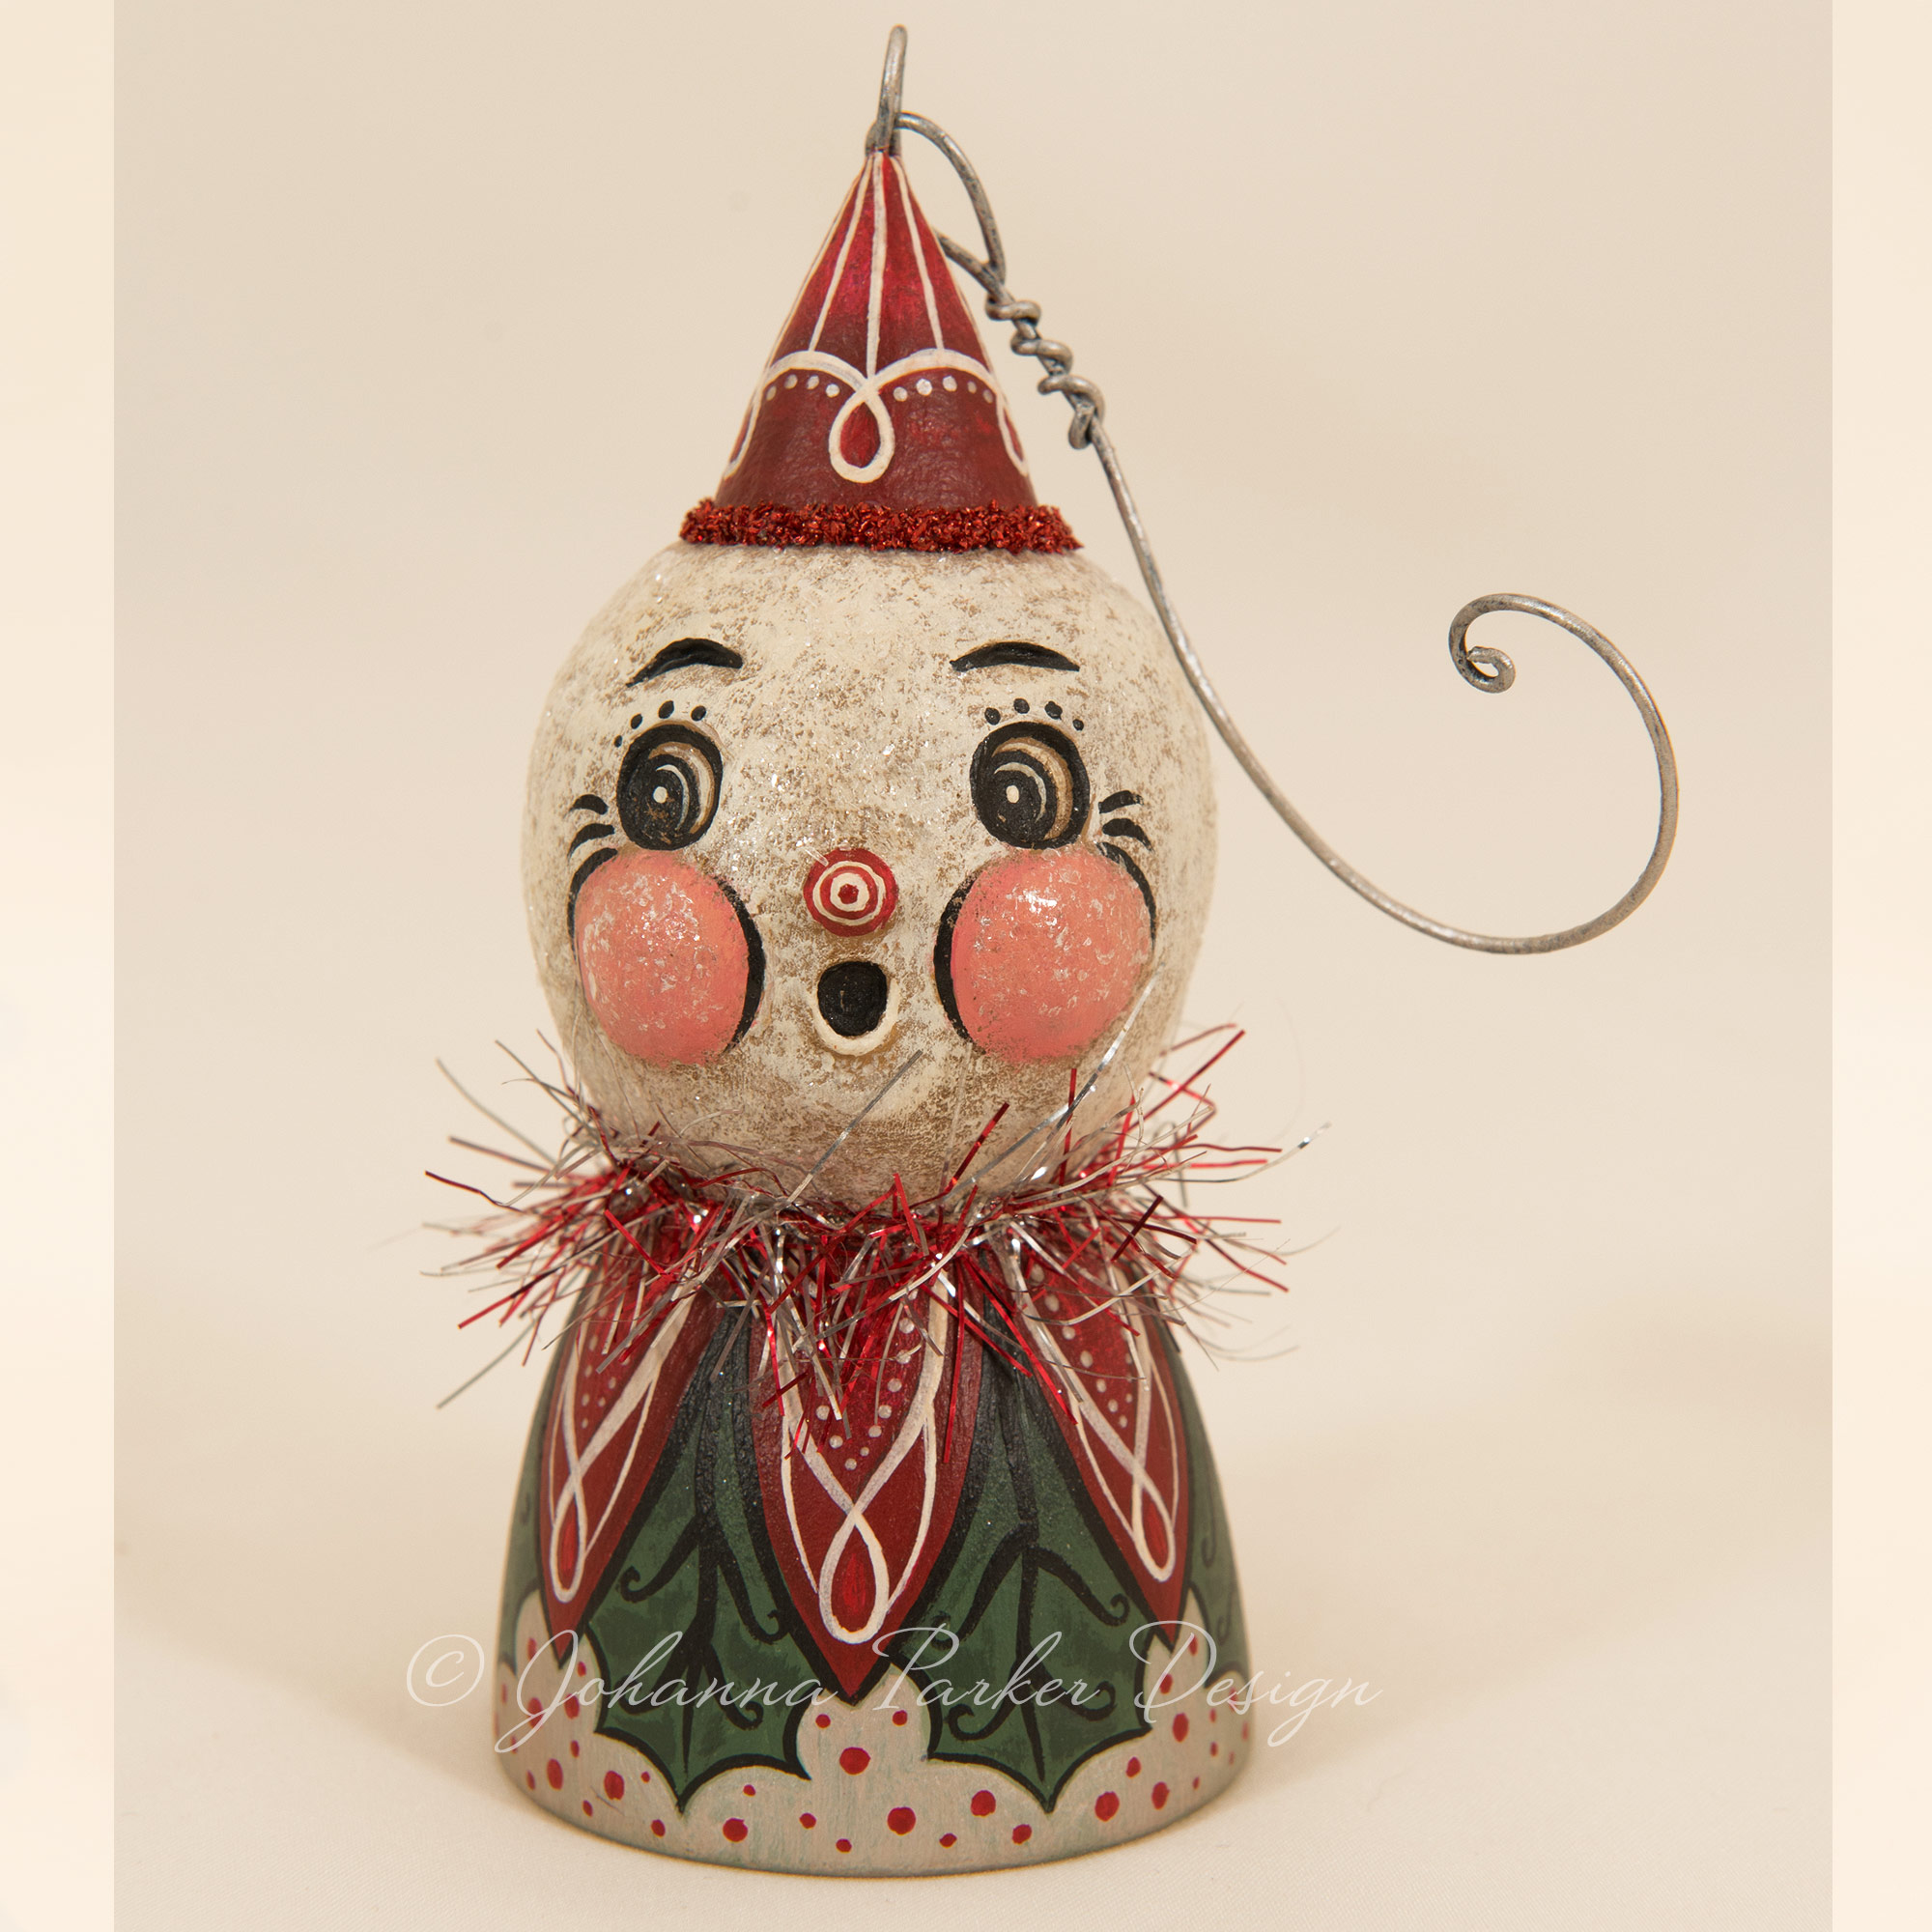 Johanna-Parker-Holly-Snowman-Bell-Ornament-1.jpg